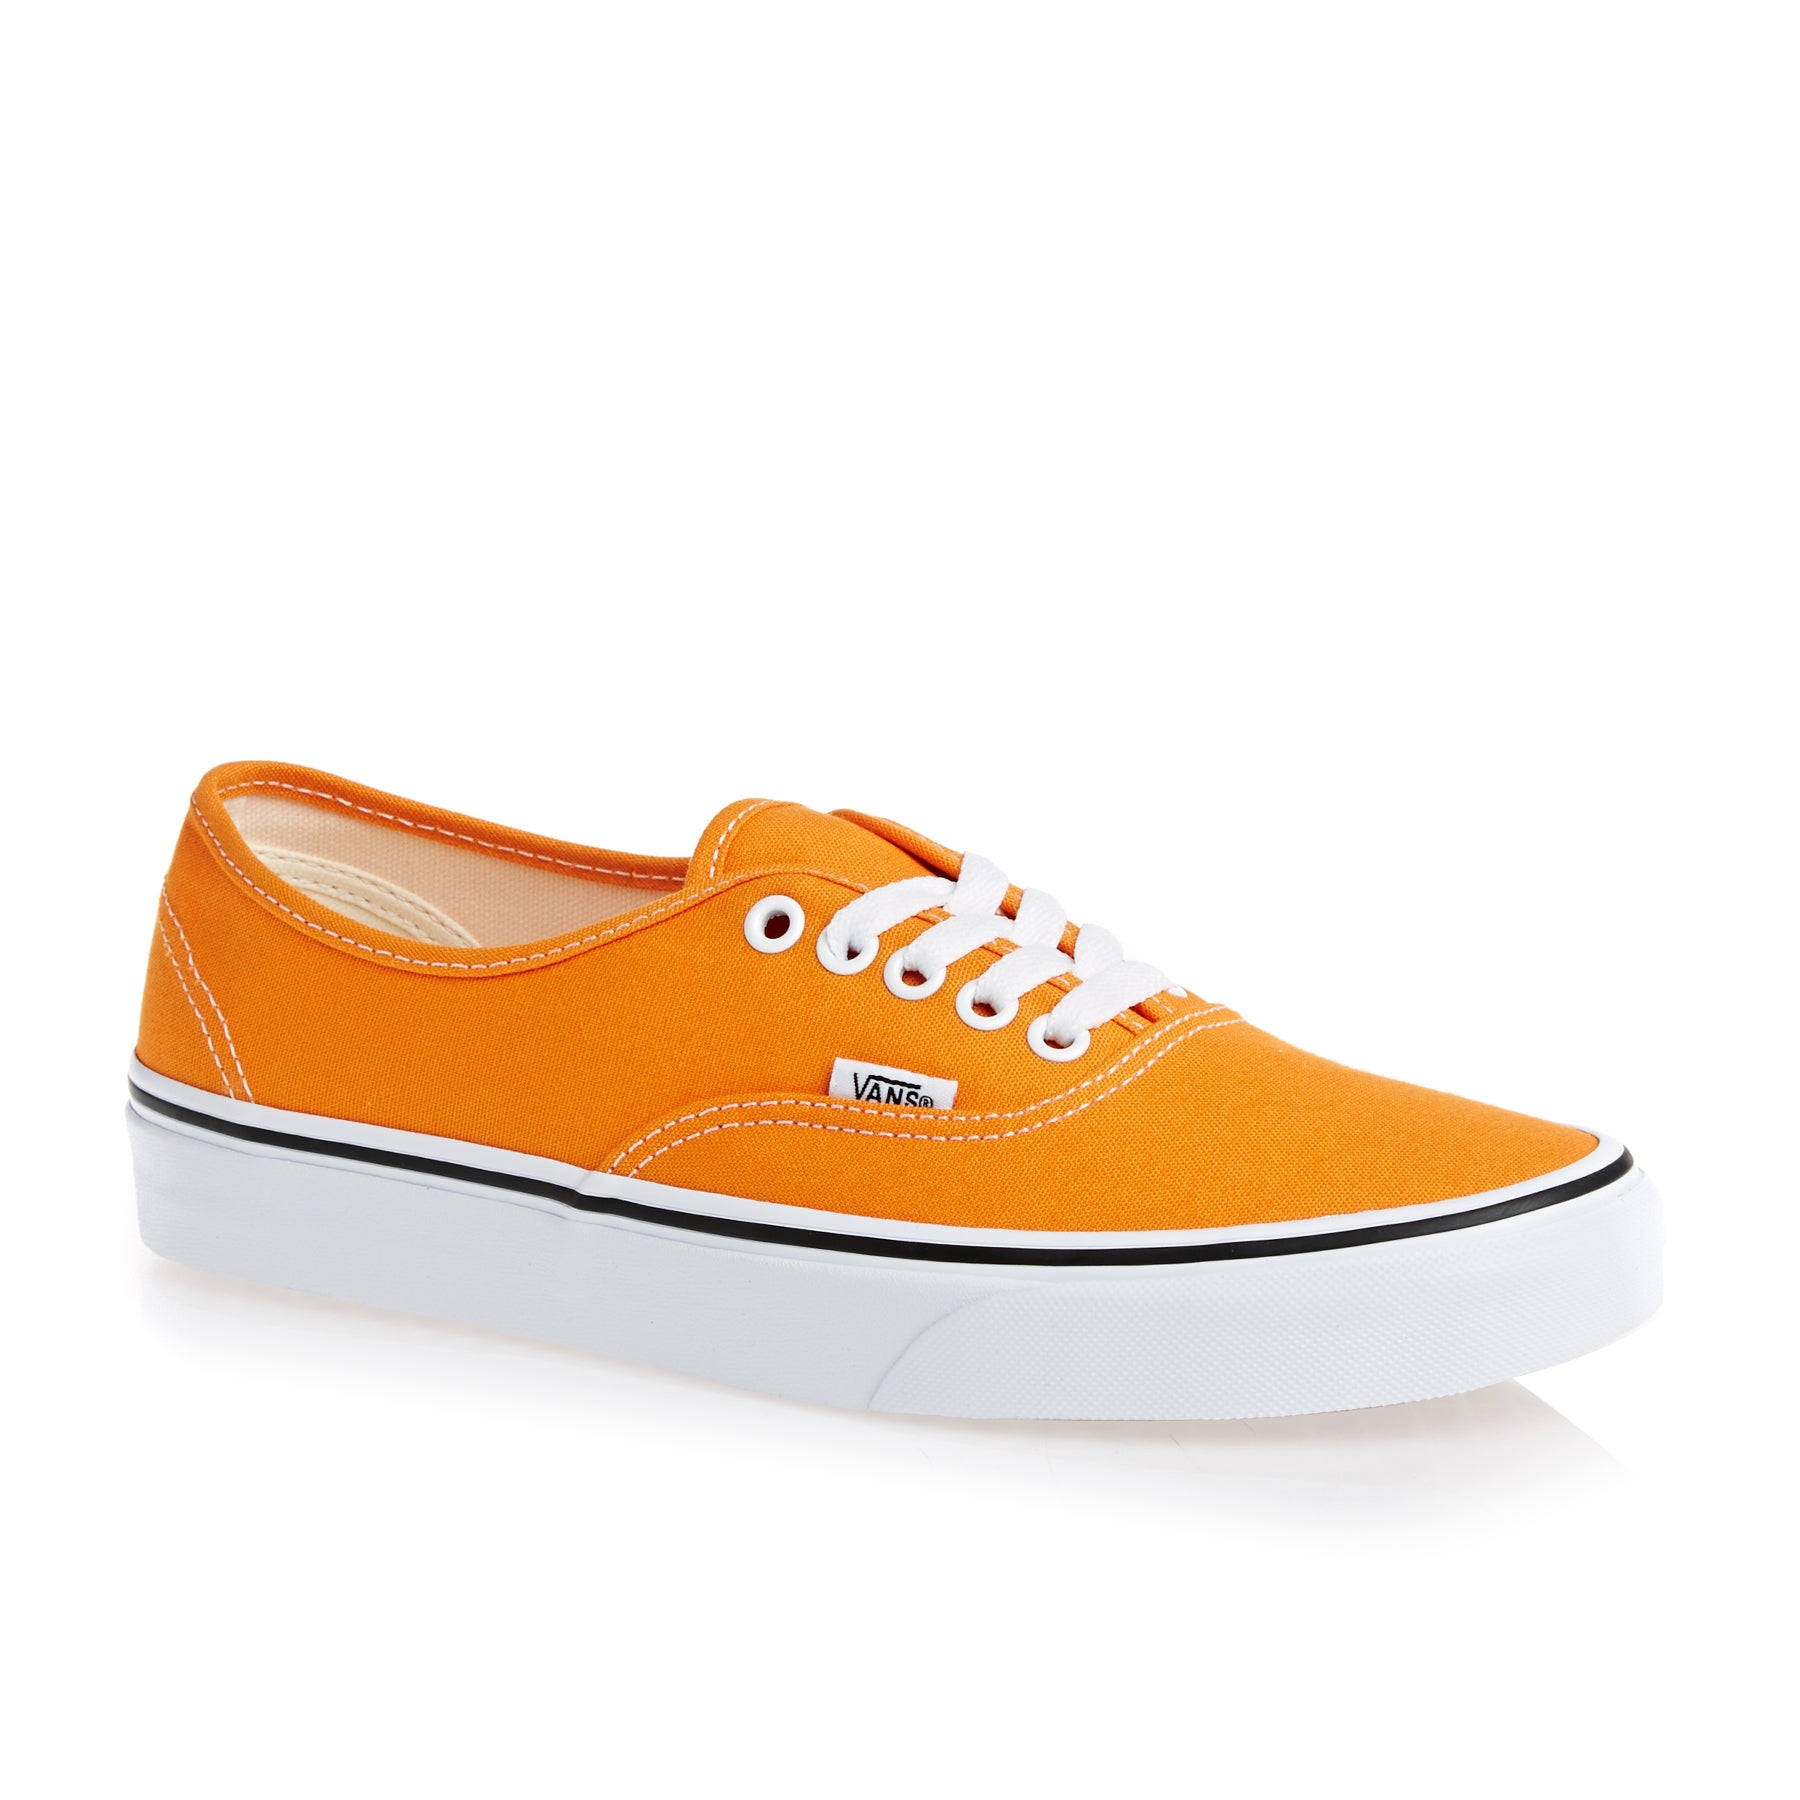 Vans Authentic Shoes - Dark Cheddar True White